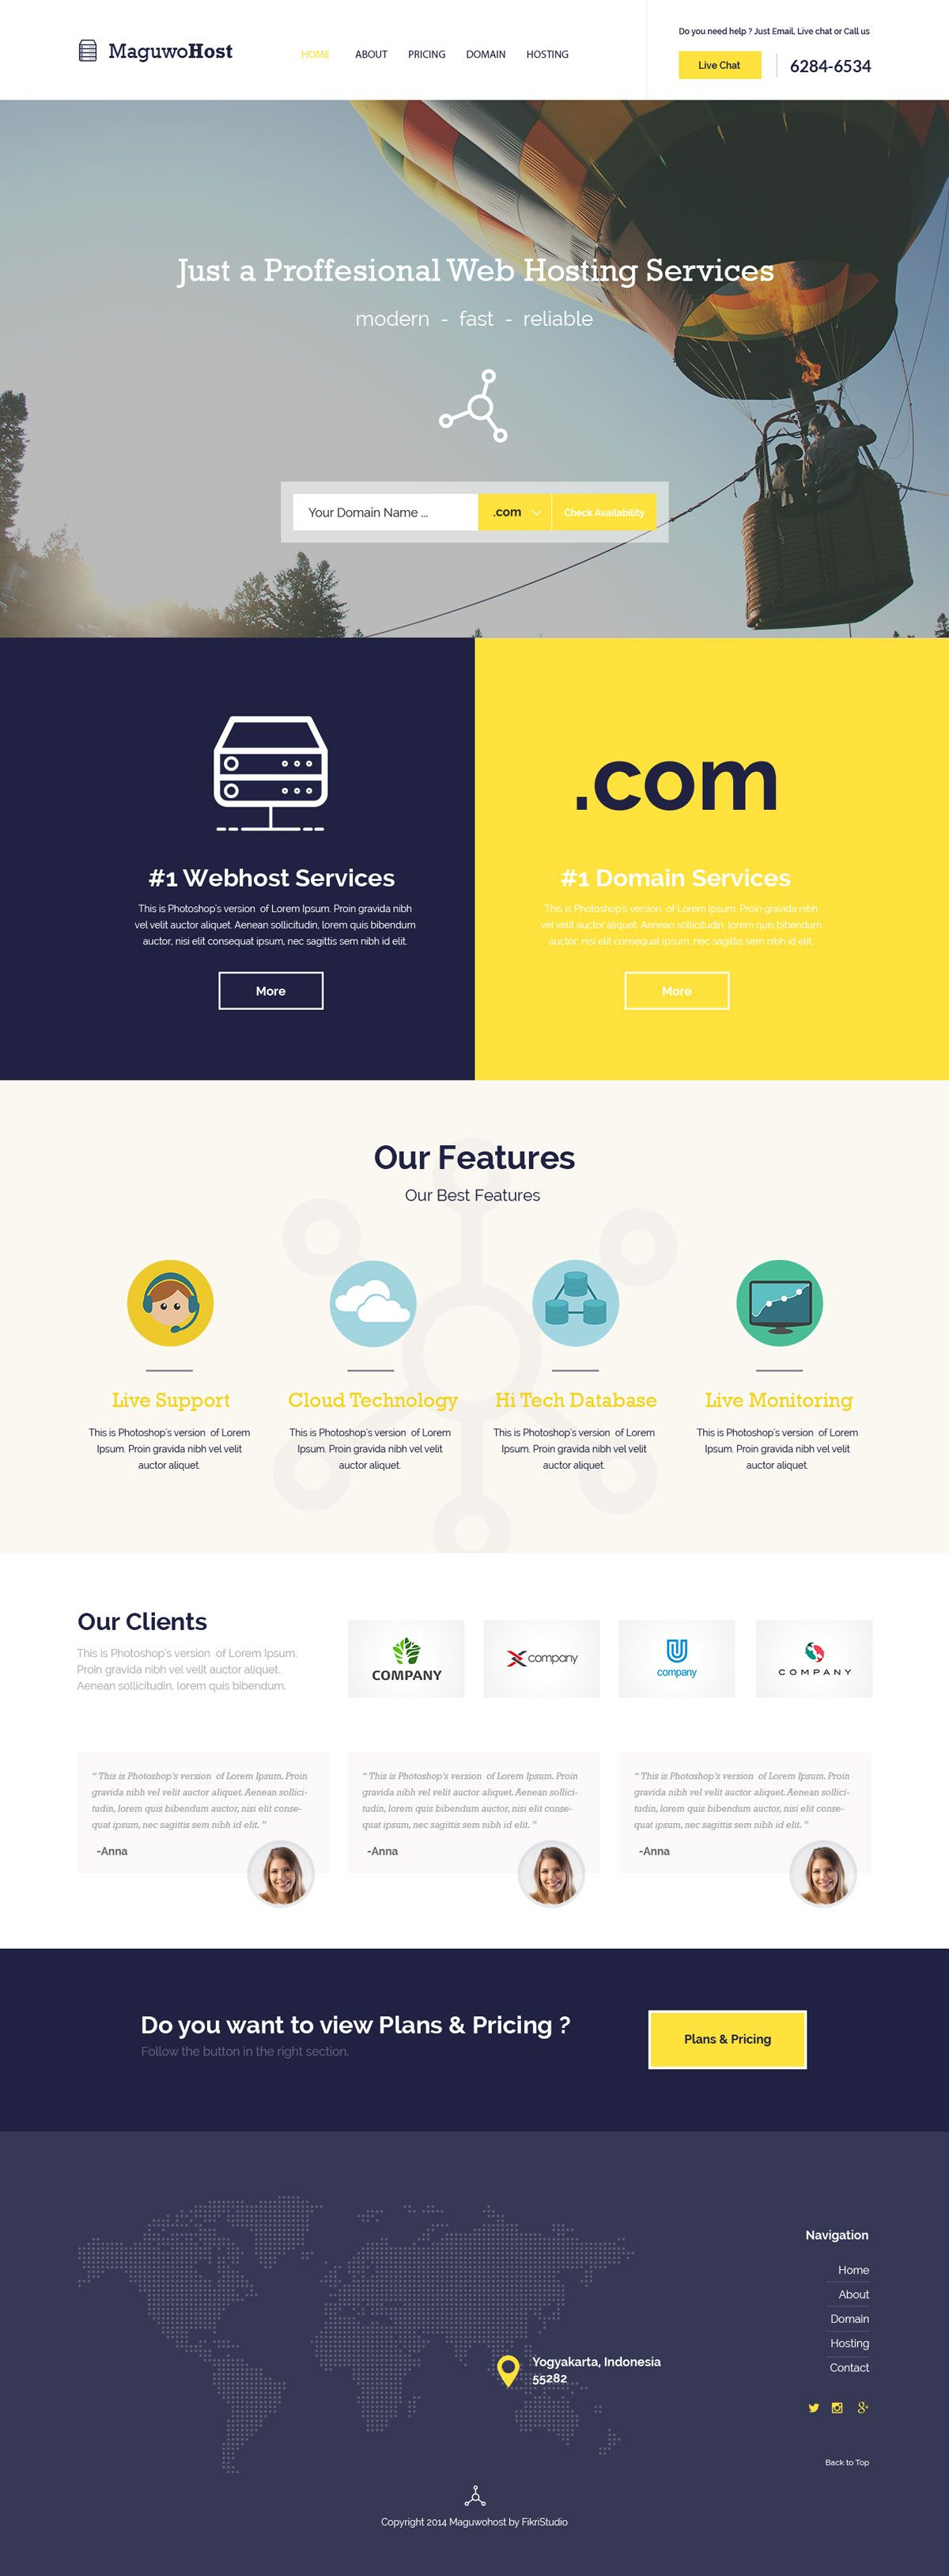 Maguwohost - FREE Hosting Template | FreeTemplates.Pro | Pinterest